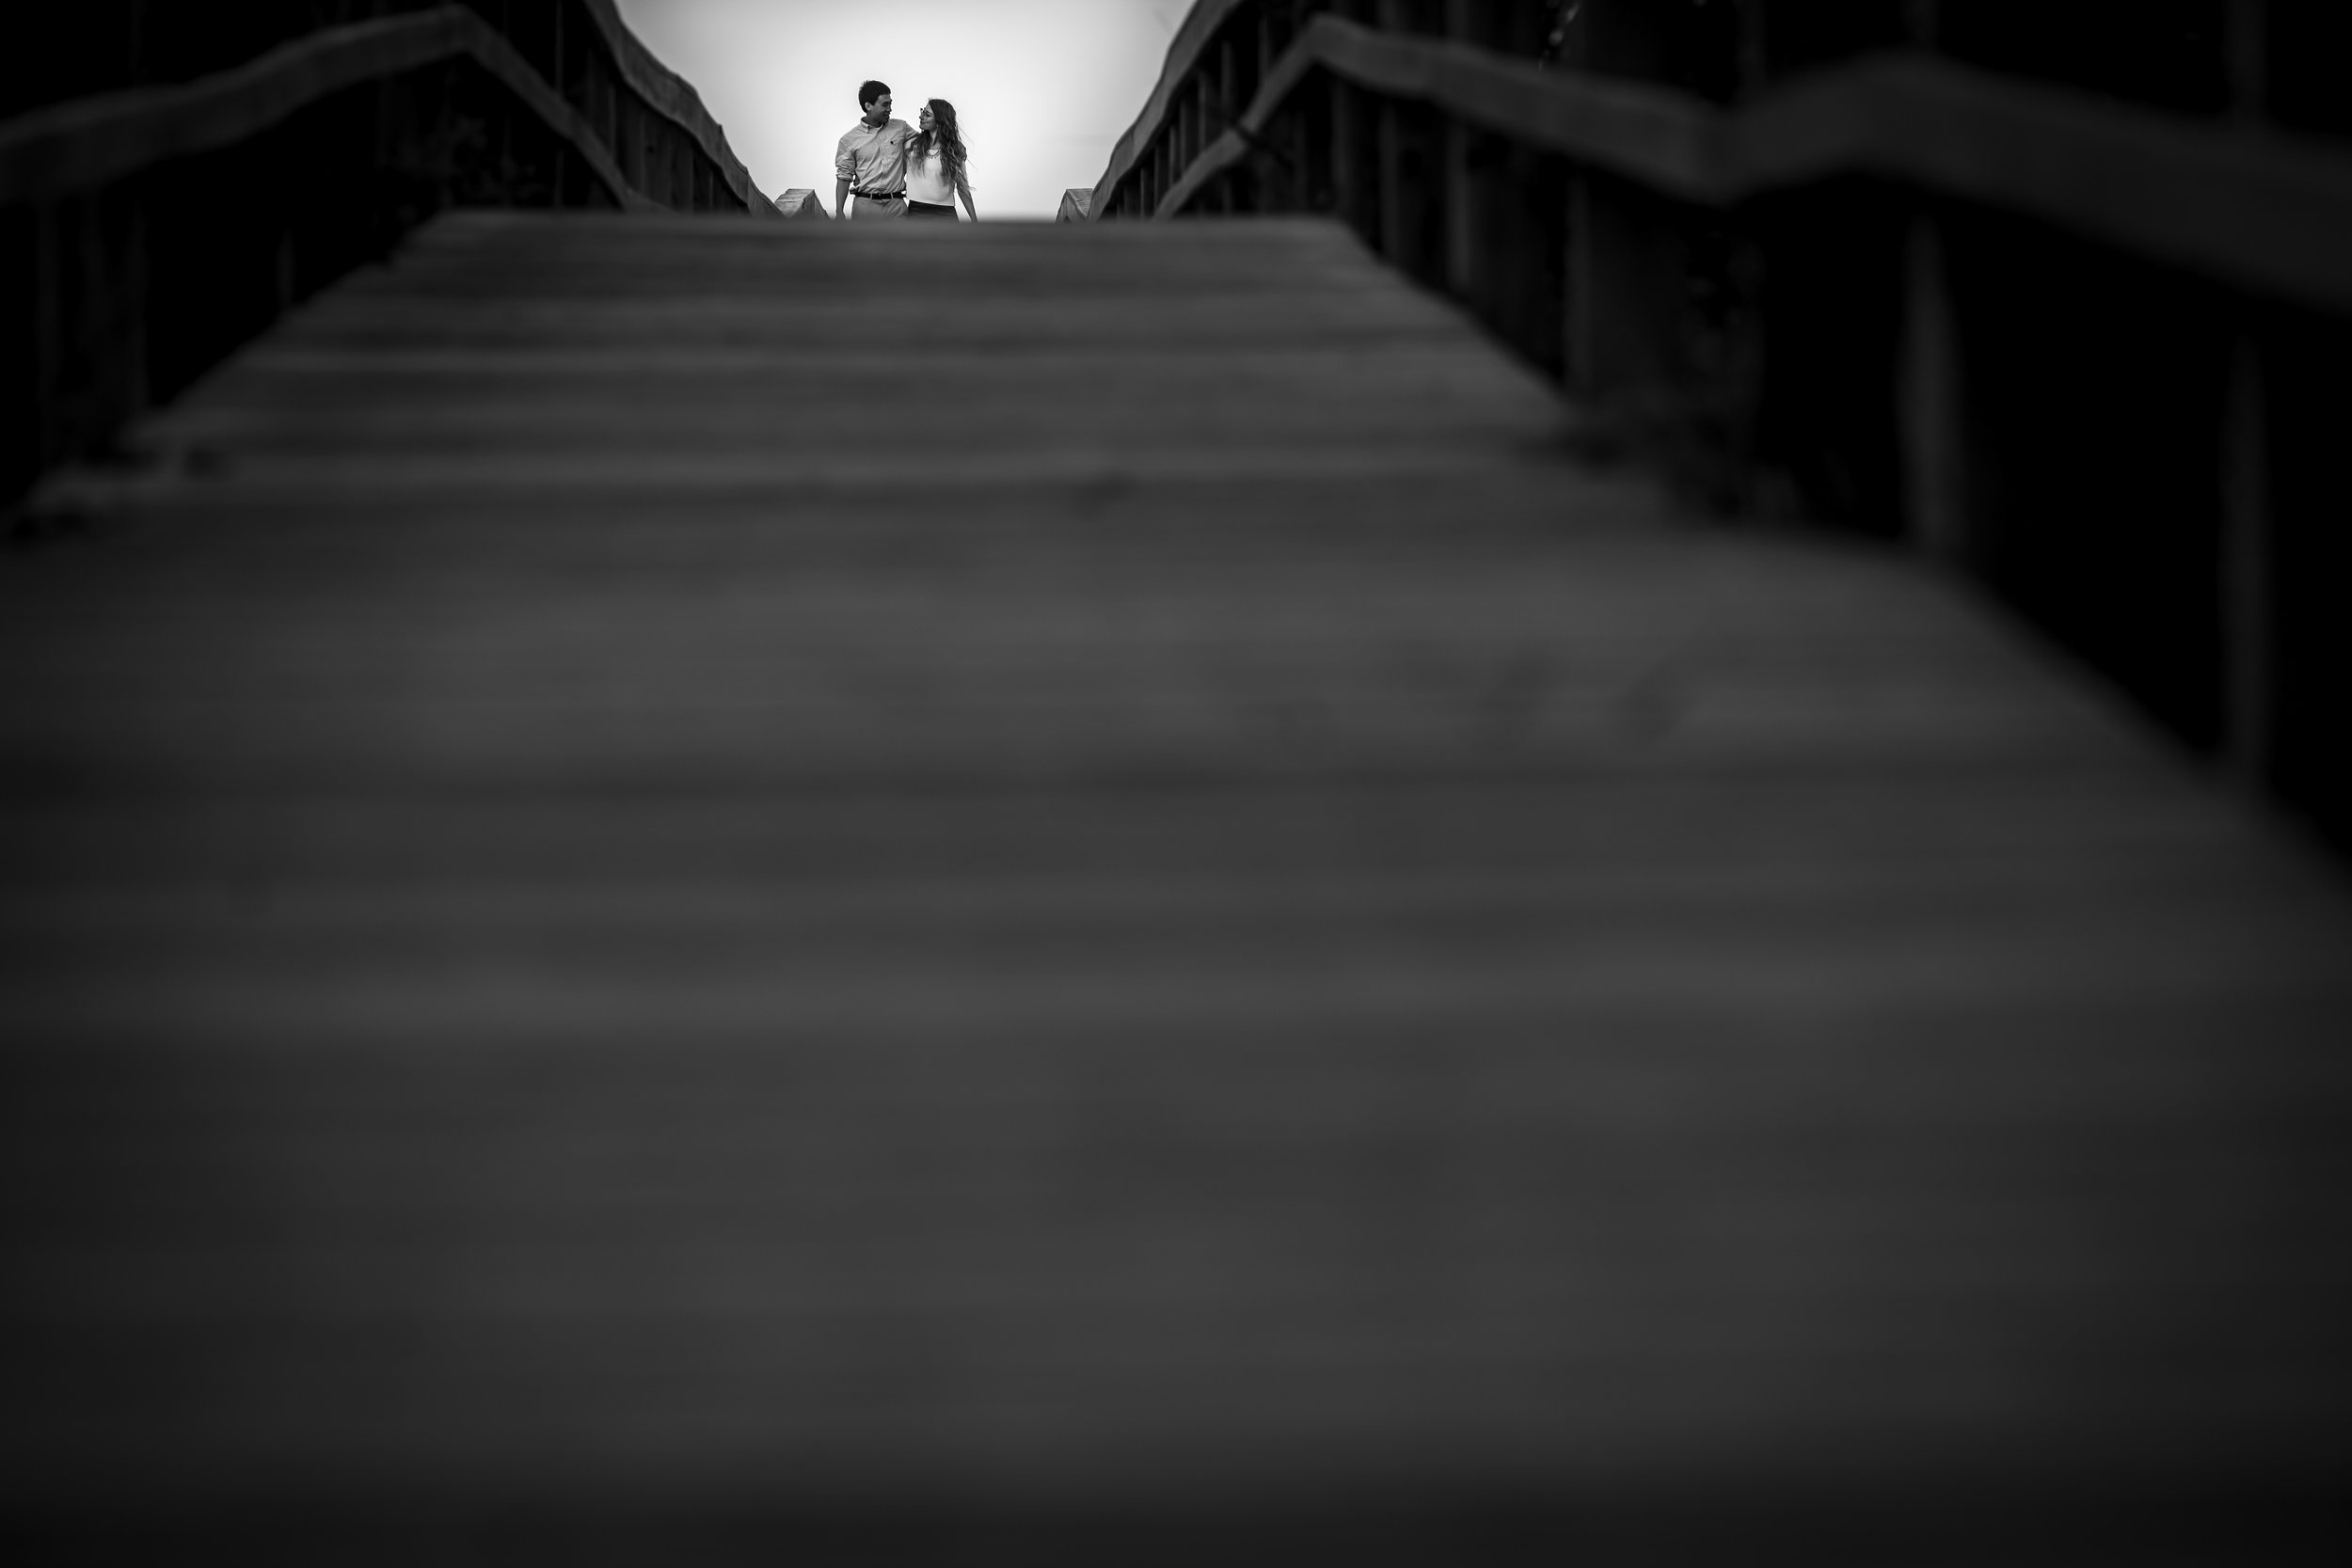 Tybee-Beach-Lighthouse-Savannah-Engagement-Photography153.jpg